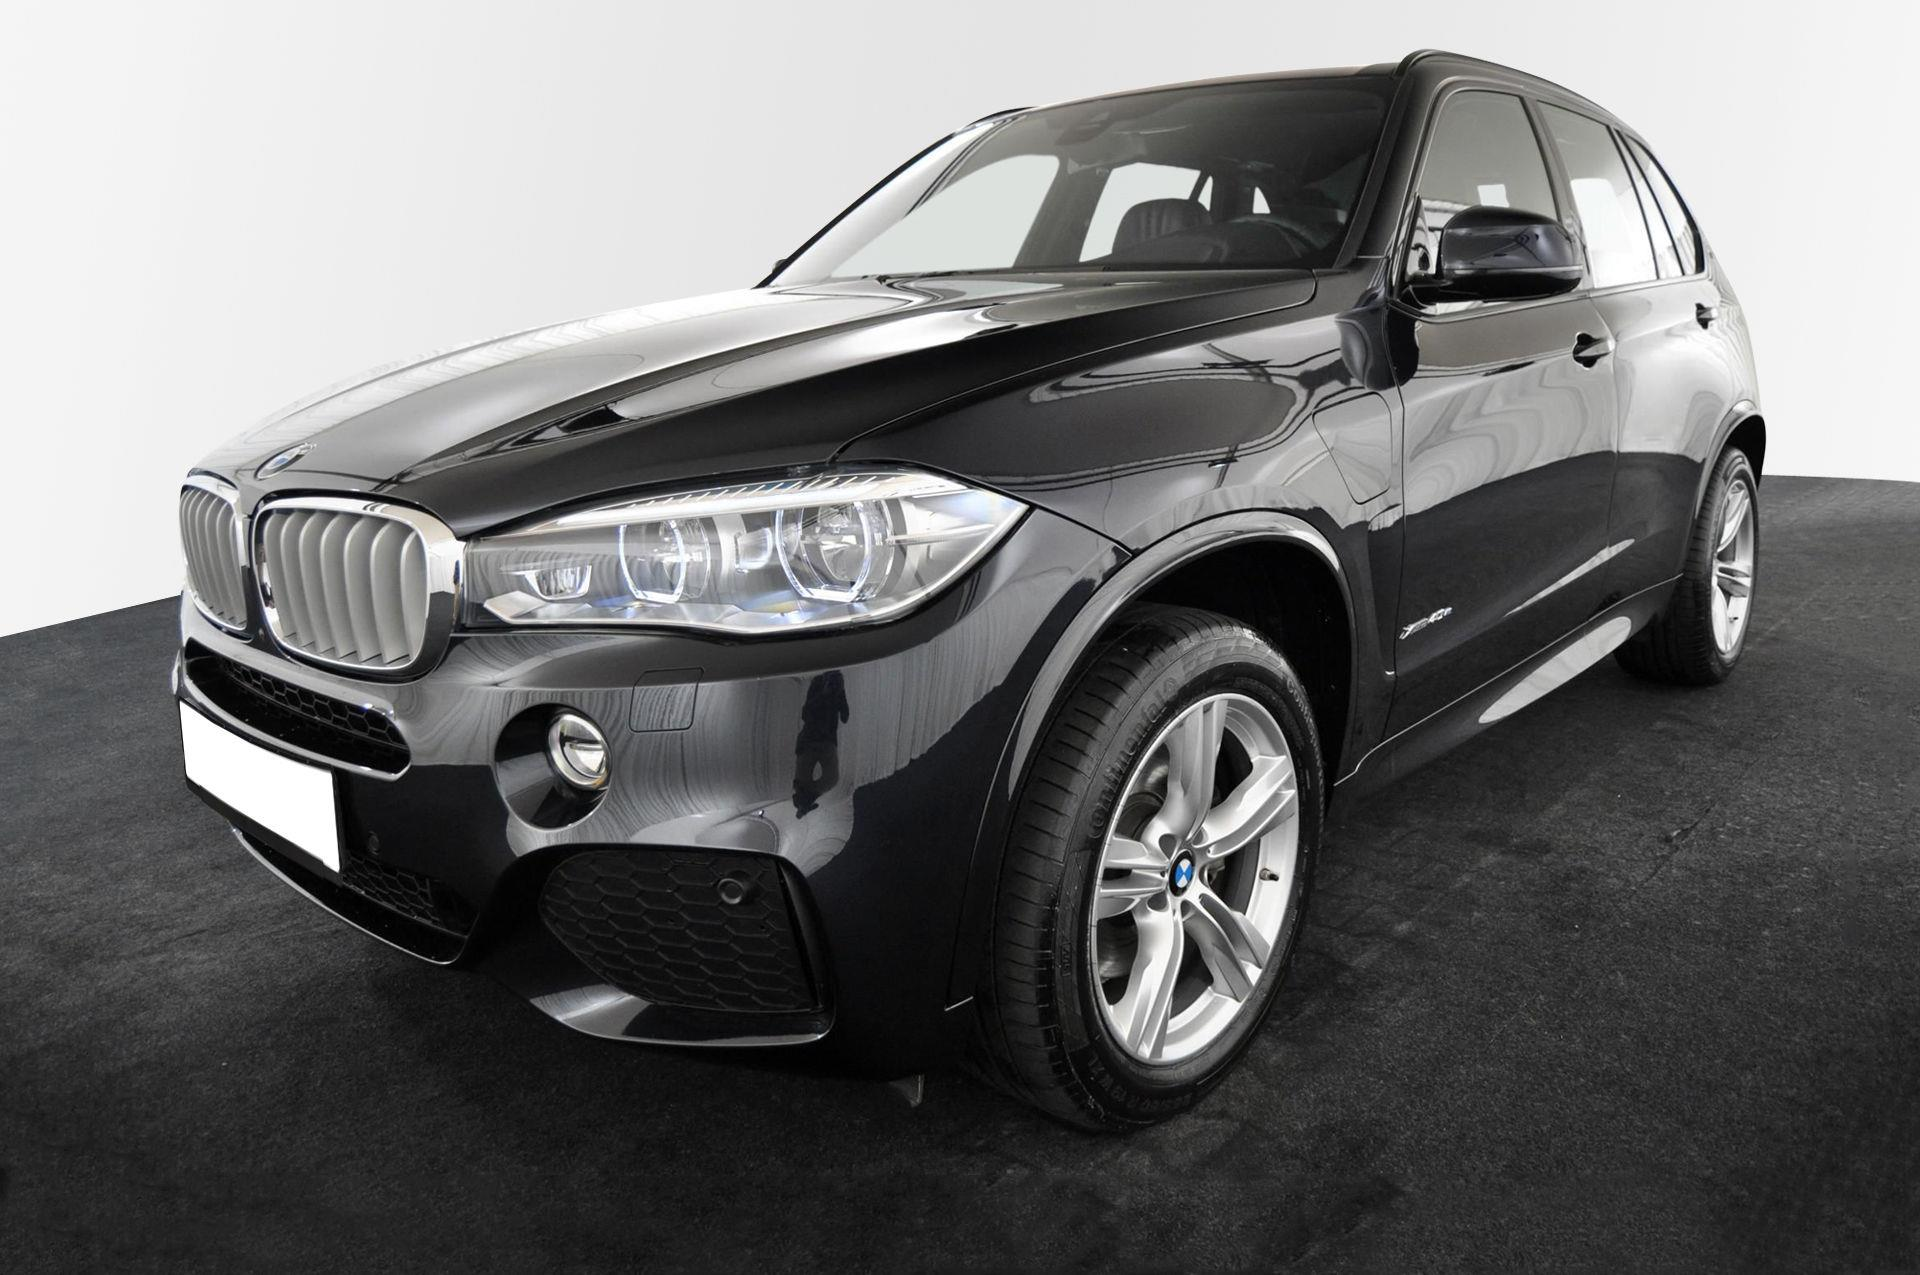 X5 xDrive-40e * iPerformance * M-Sport * Led * Clima 4 Zonas 0000007344